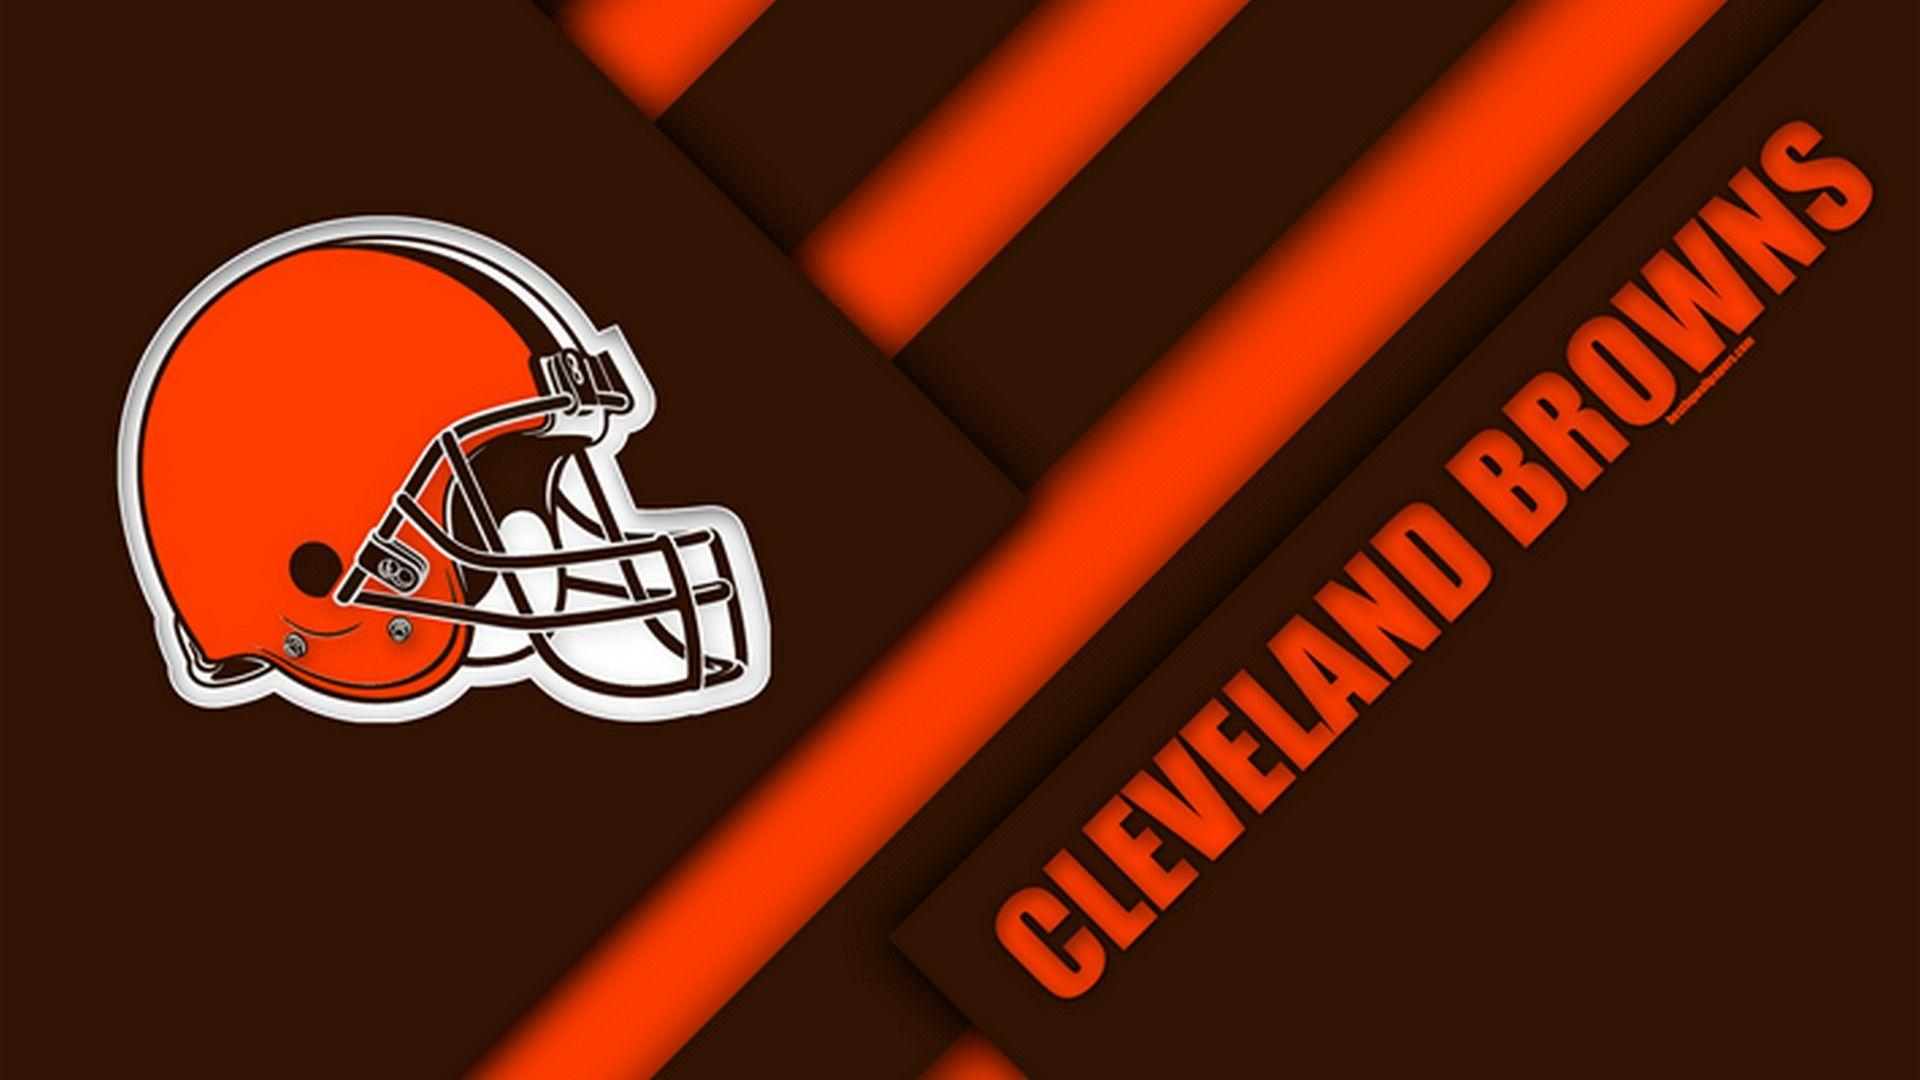 Cleveland Browns Desktop Wallpaper | chucks shop | Pinterest ...